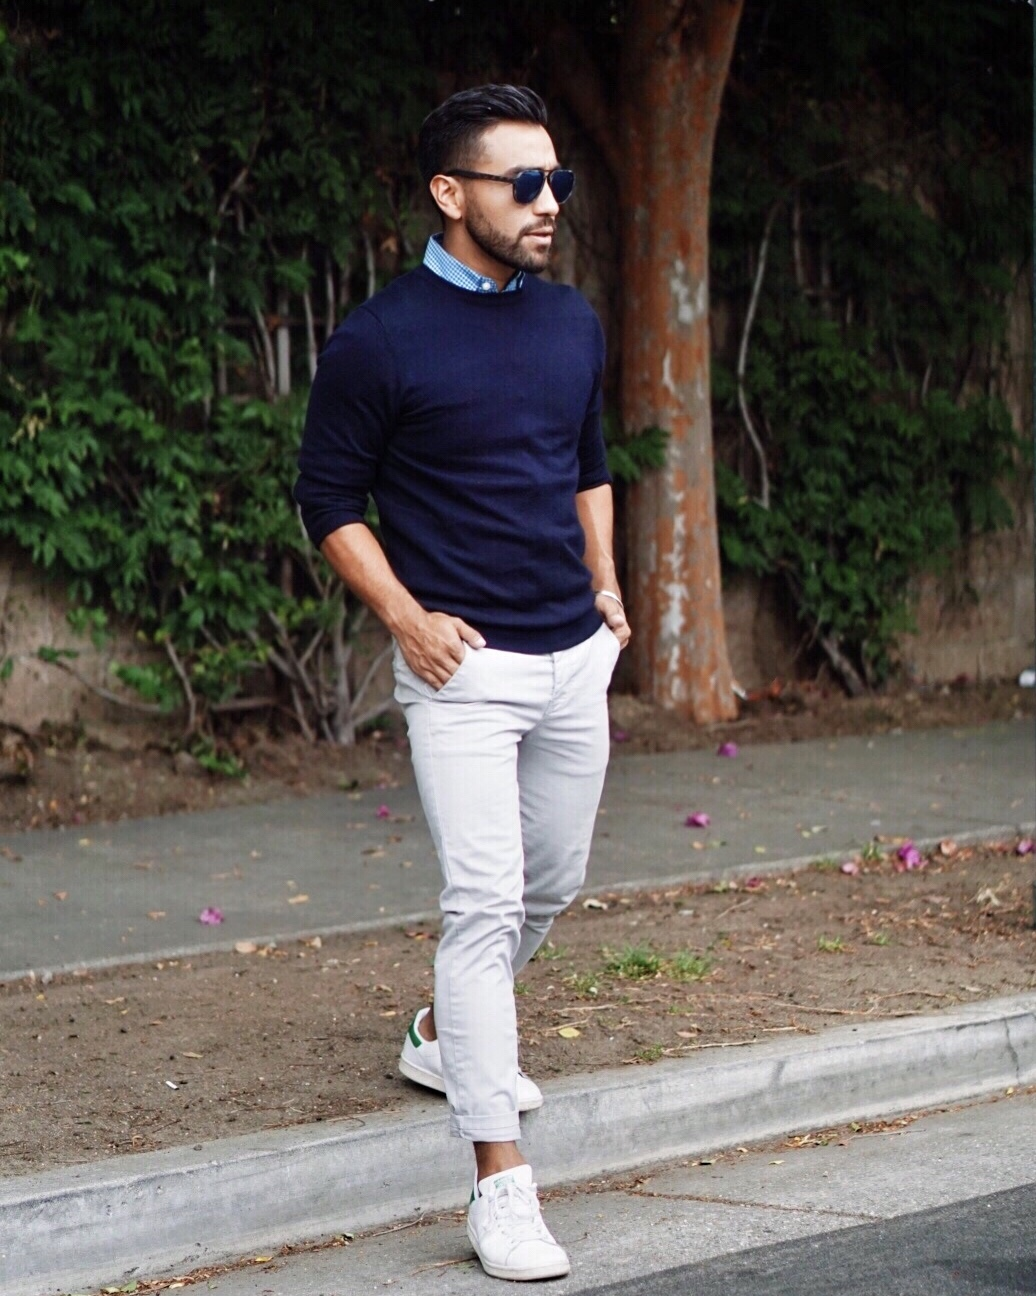 WTWT: SMART CASUAL SPRINGS – RULE OF THUMBS